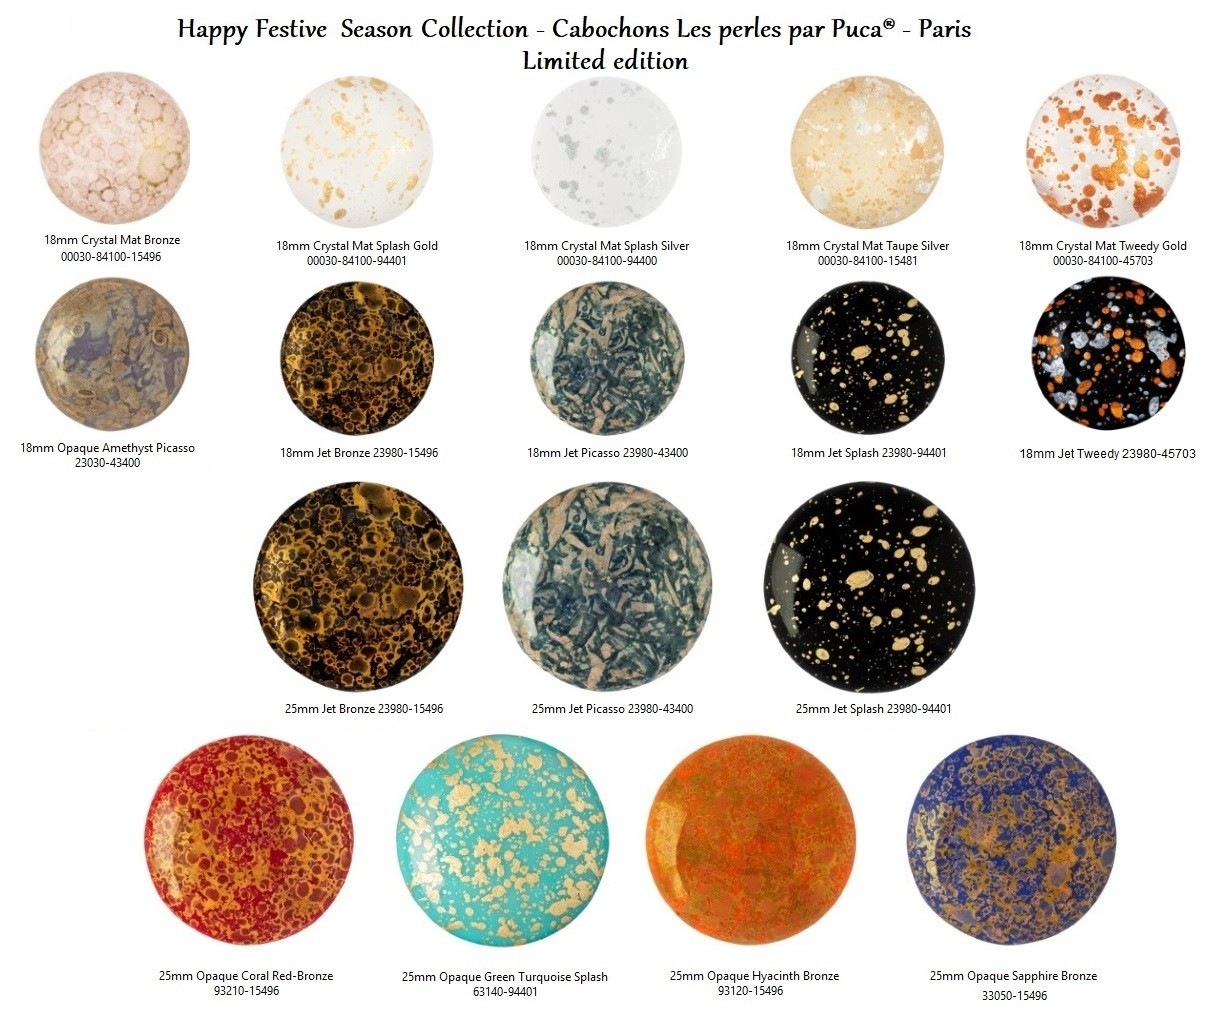 Cabochon Par Puca Happy Festive Season Collection